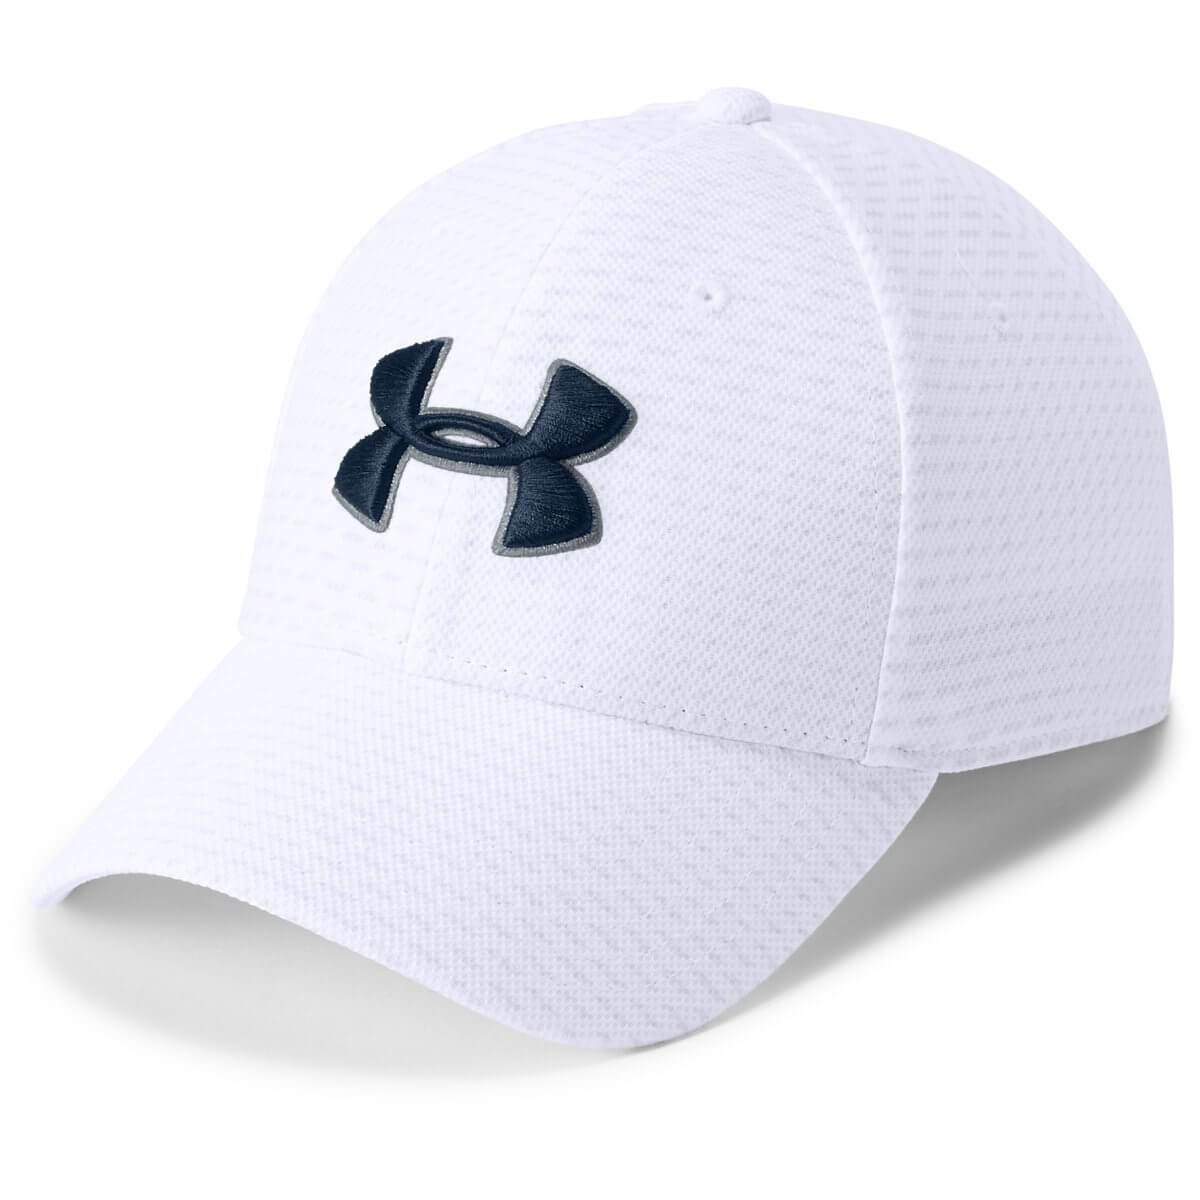 Under Armour Šiltovka Men's Printed Blitzing 3.0 White LXL